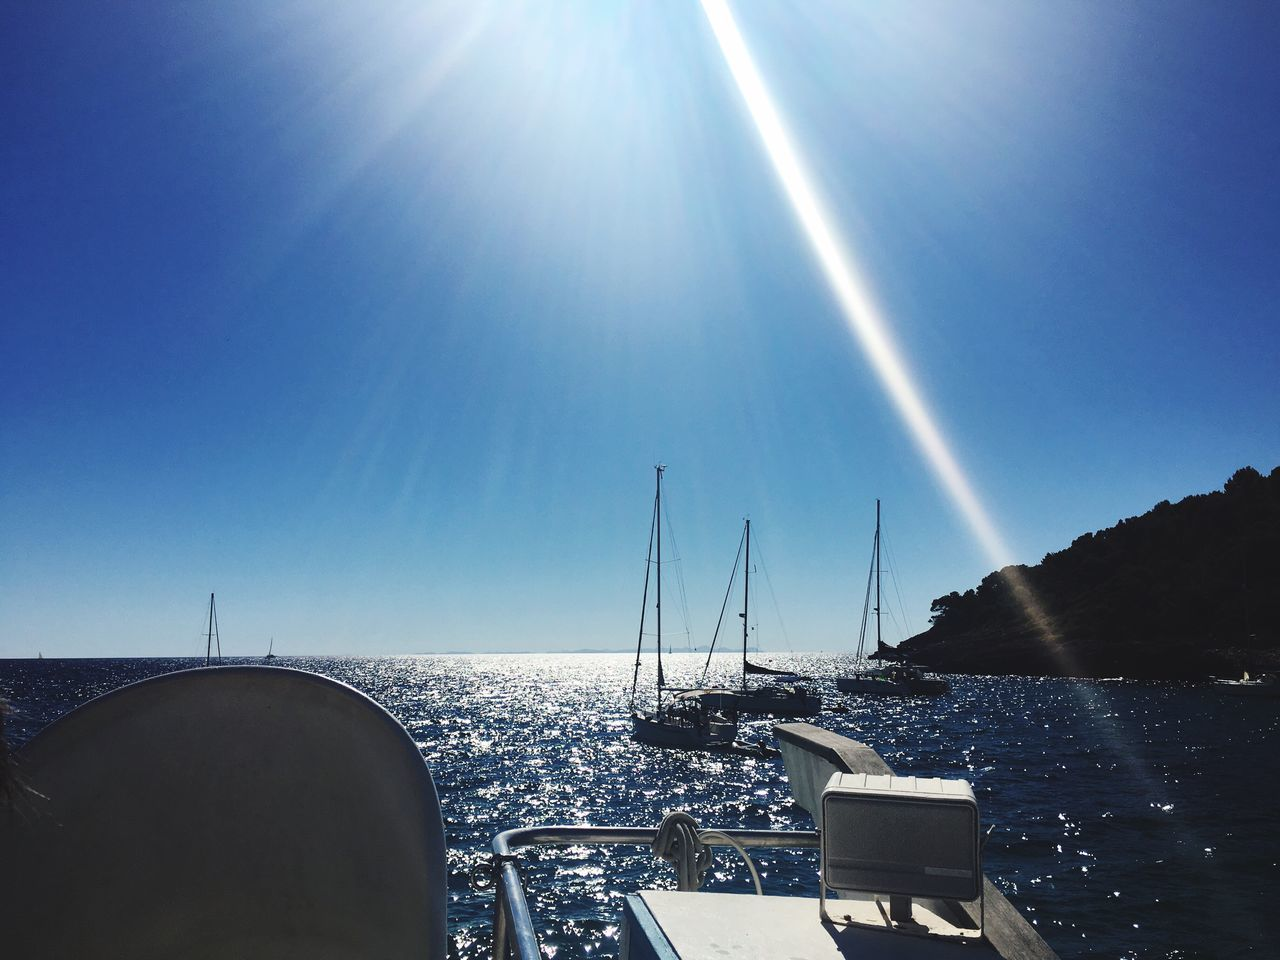 sunlight, sunbeam, water, sea, lens flare, blue, transportation, day, clear sky, nautical vessel, beauty in nature, nature, no people, sun, sky, outdoors, scenics, sailing, horizon over water